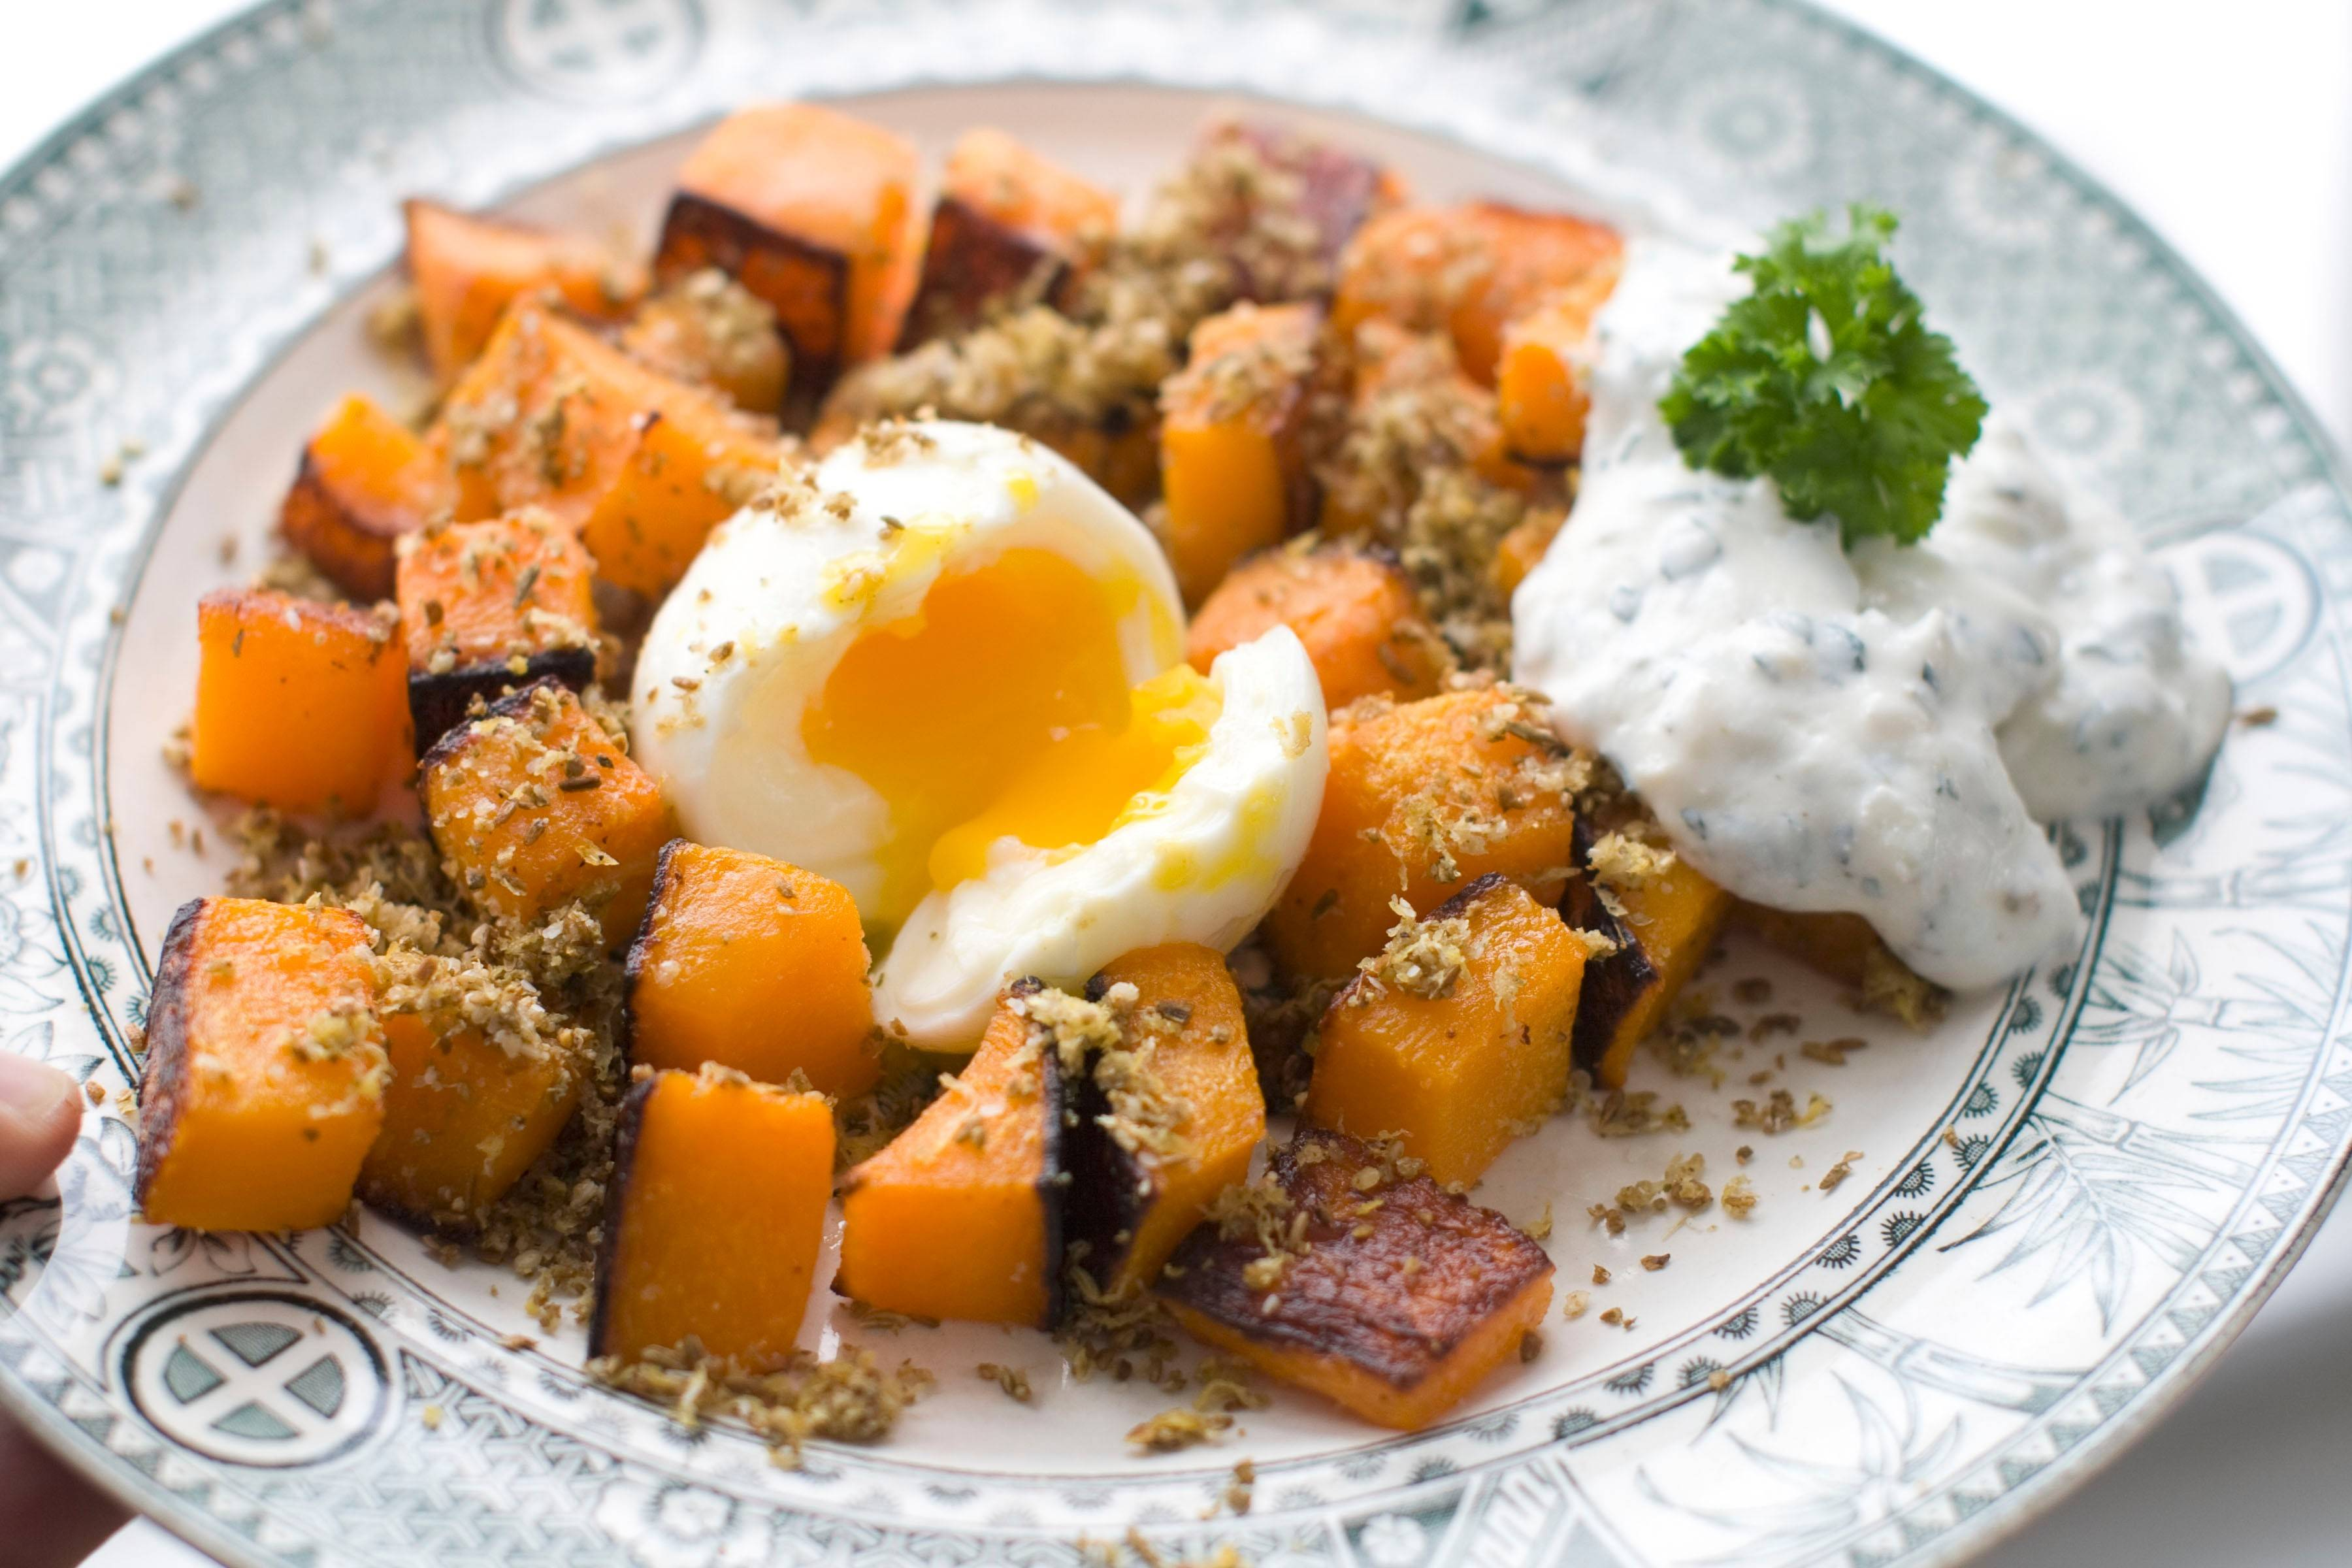 Don't discount hearty squash just because the temperature has ticked up a few degrees. Give roasted butternut a lighter touch with a soft-cooked egg.